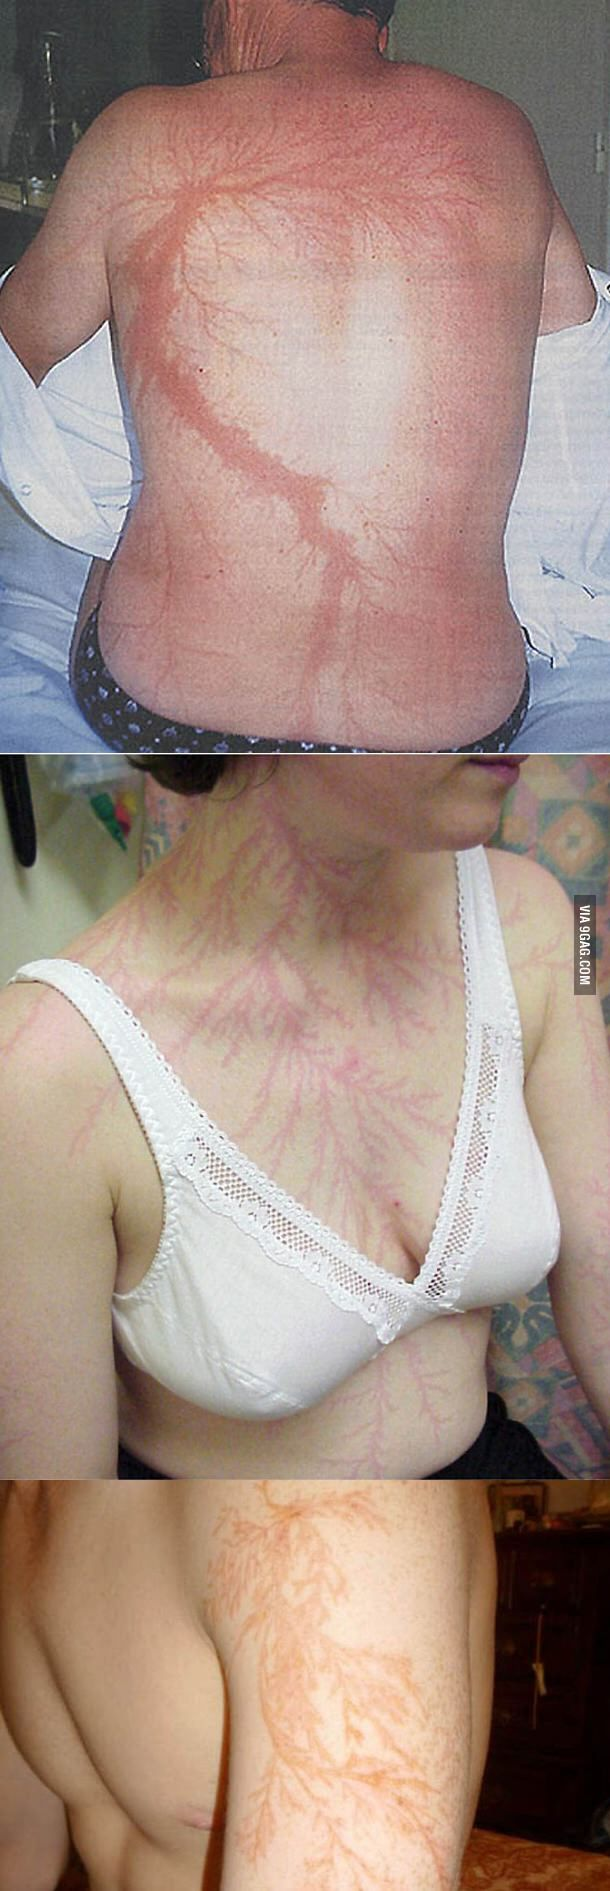 If you get struck by lightning you get scars like these... or die ...